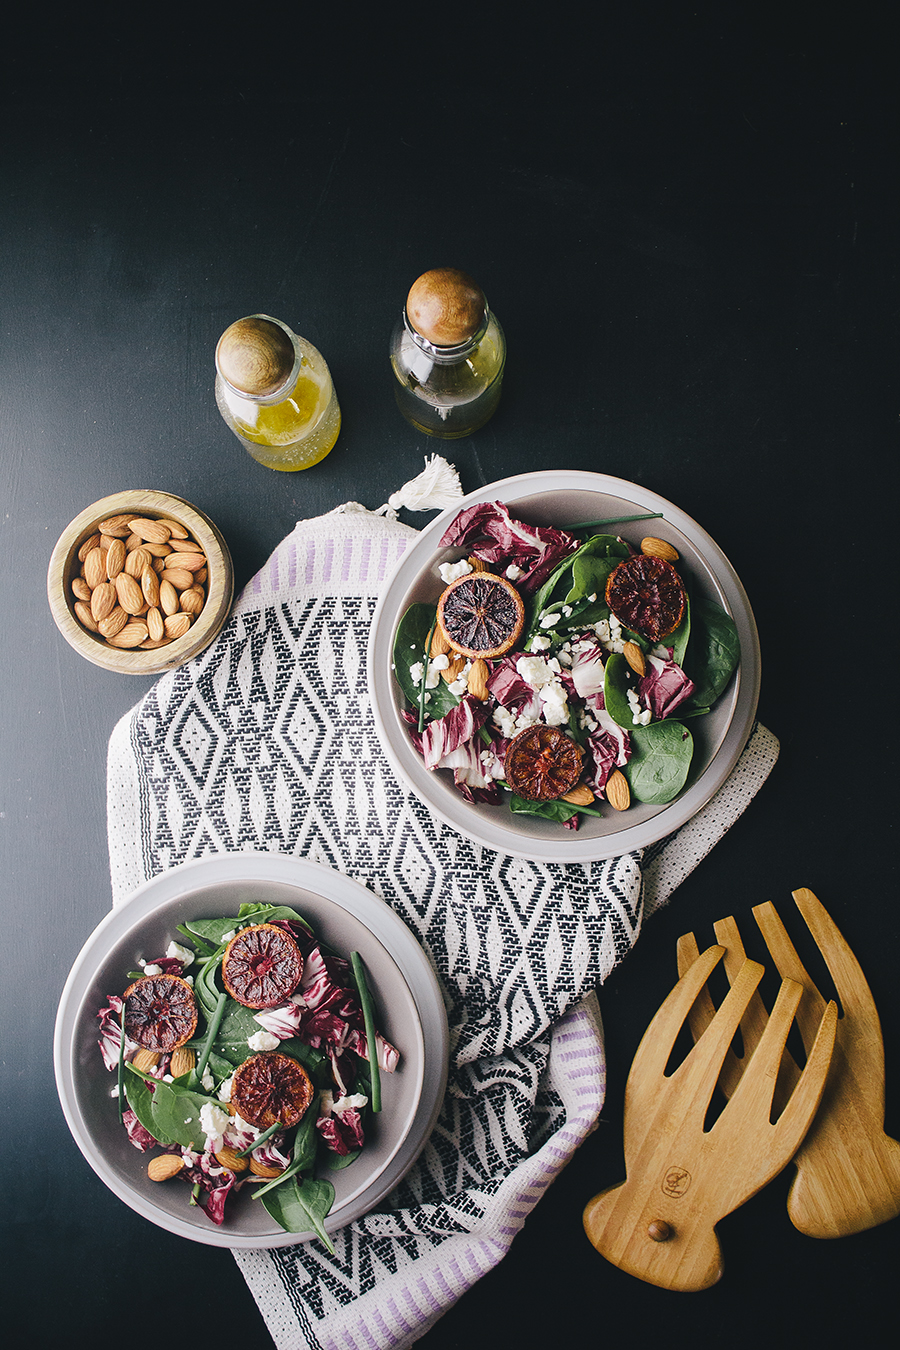 Spinach & Radicchio Salad with Broiled Citrus Vinaigrette